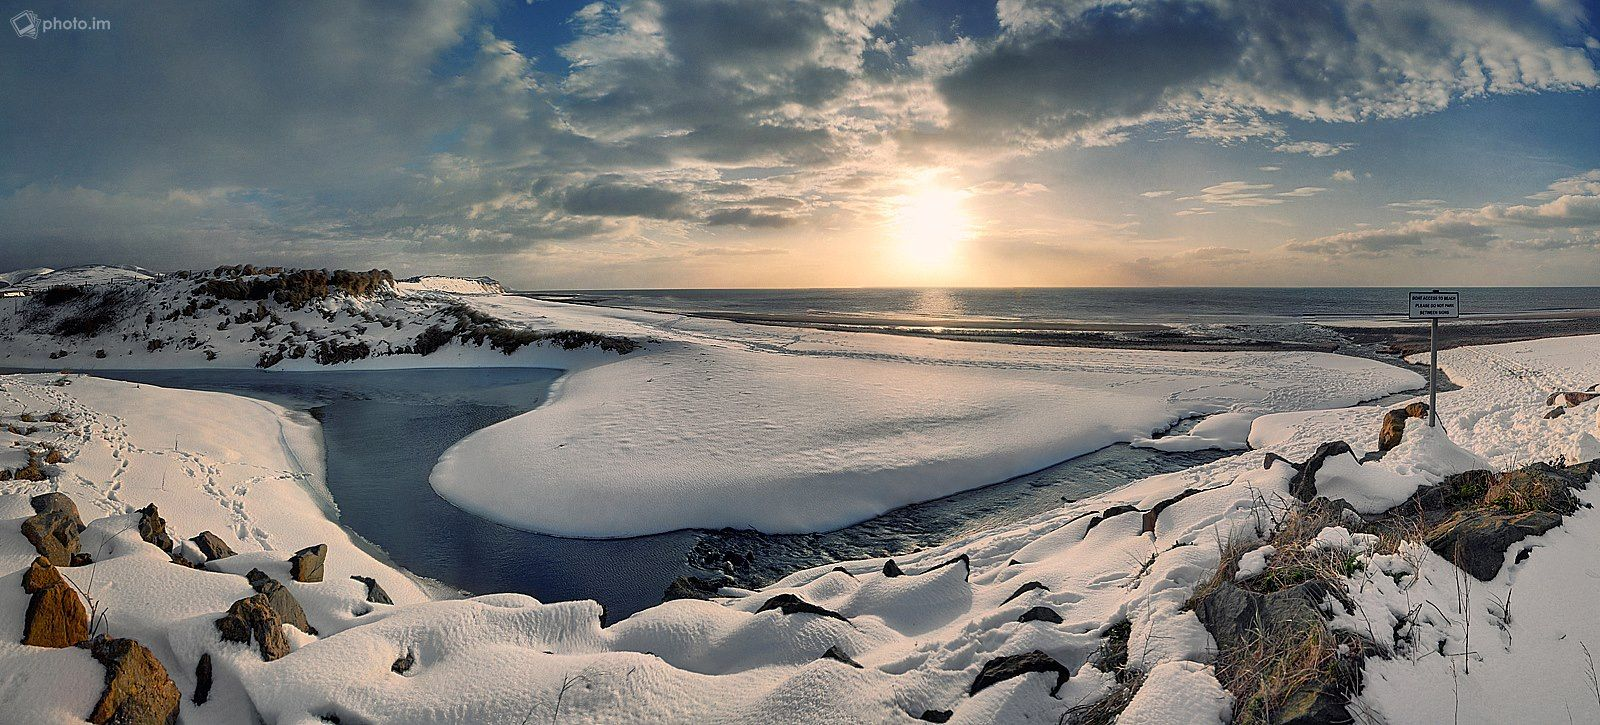 Snow On The Cronk Image By Photo Im Isle Of Man Snow Photos Places To Visit